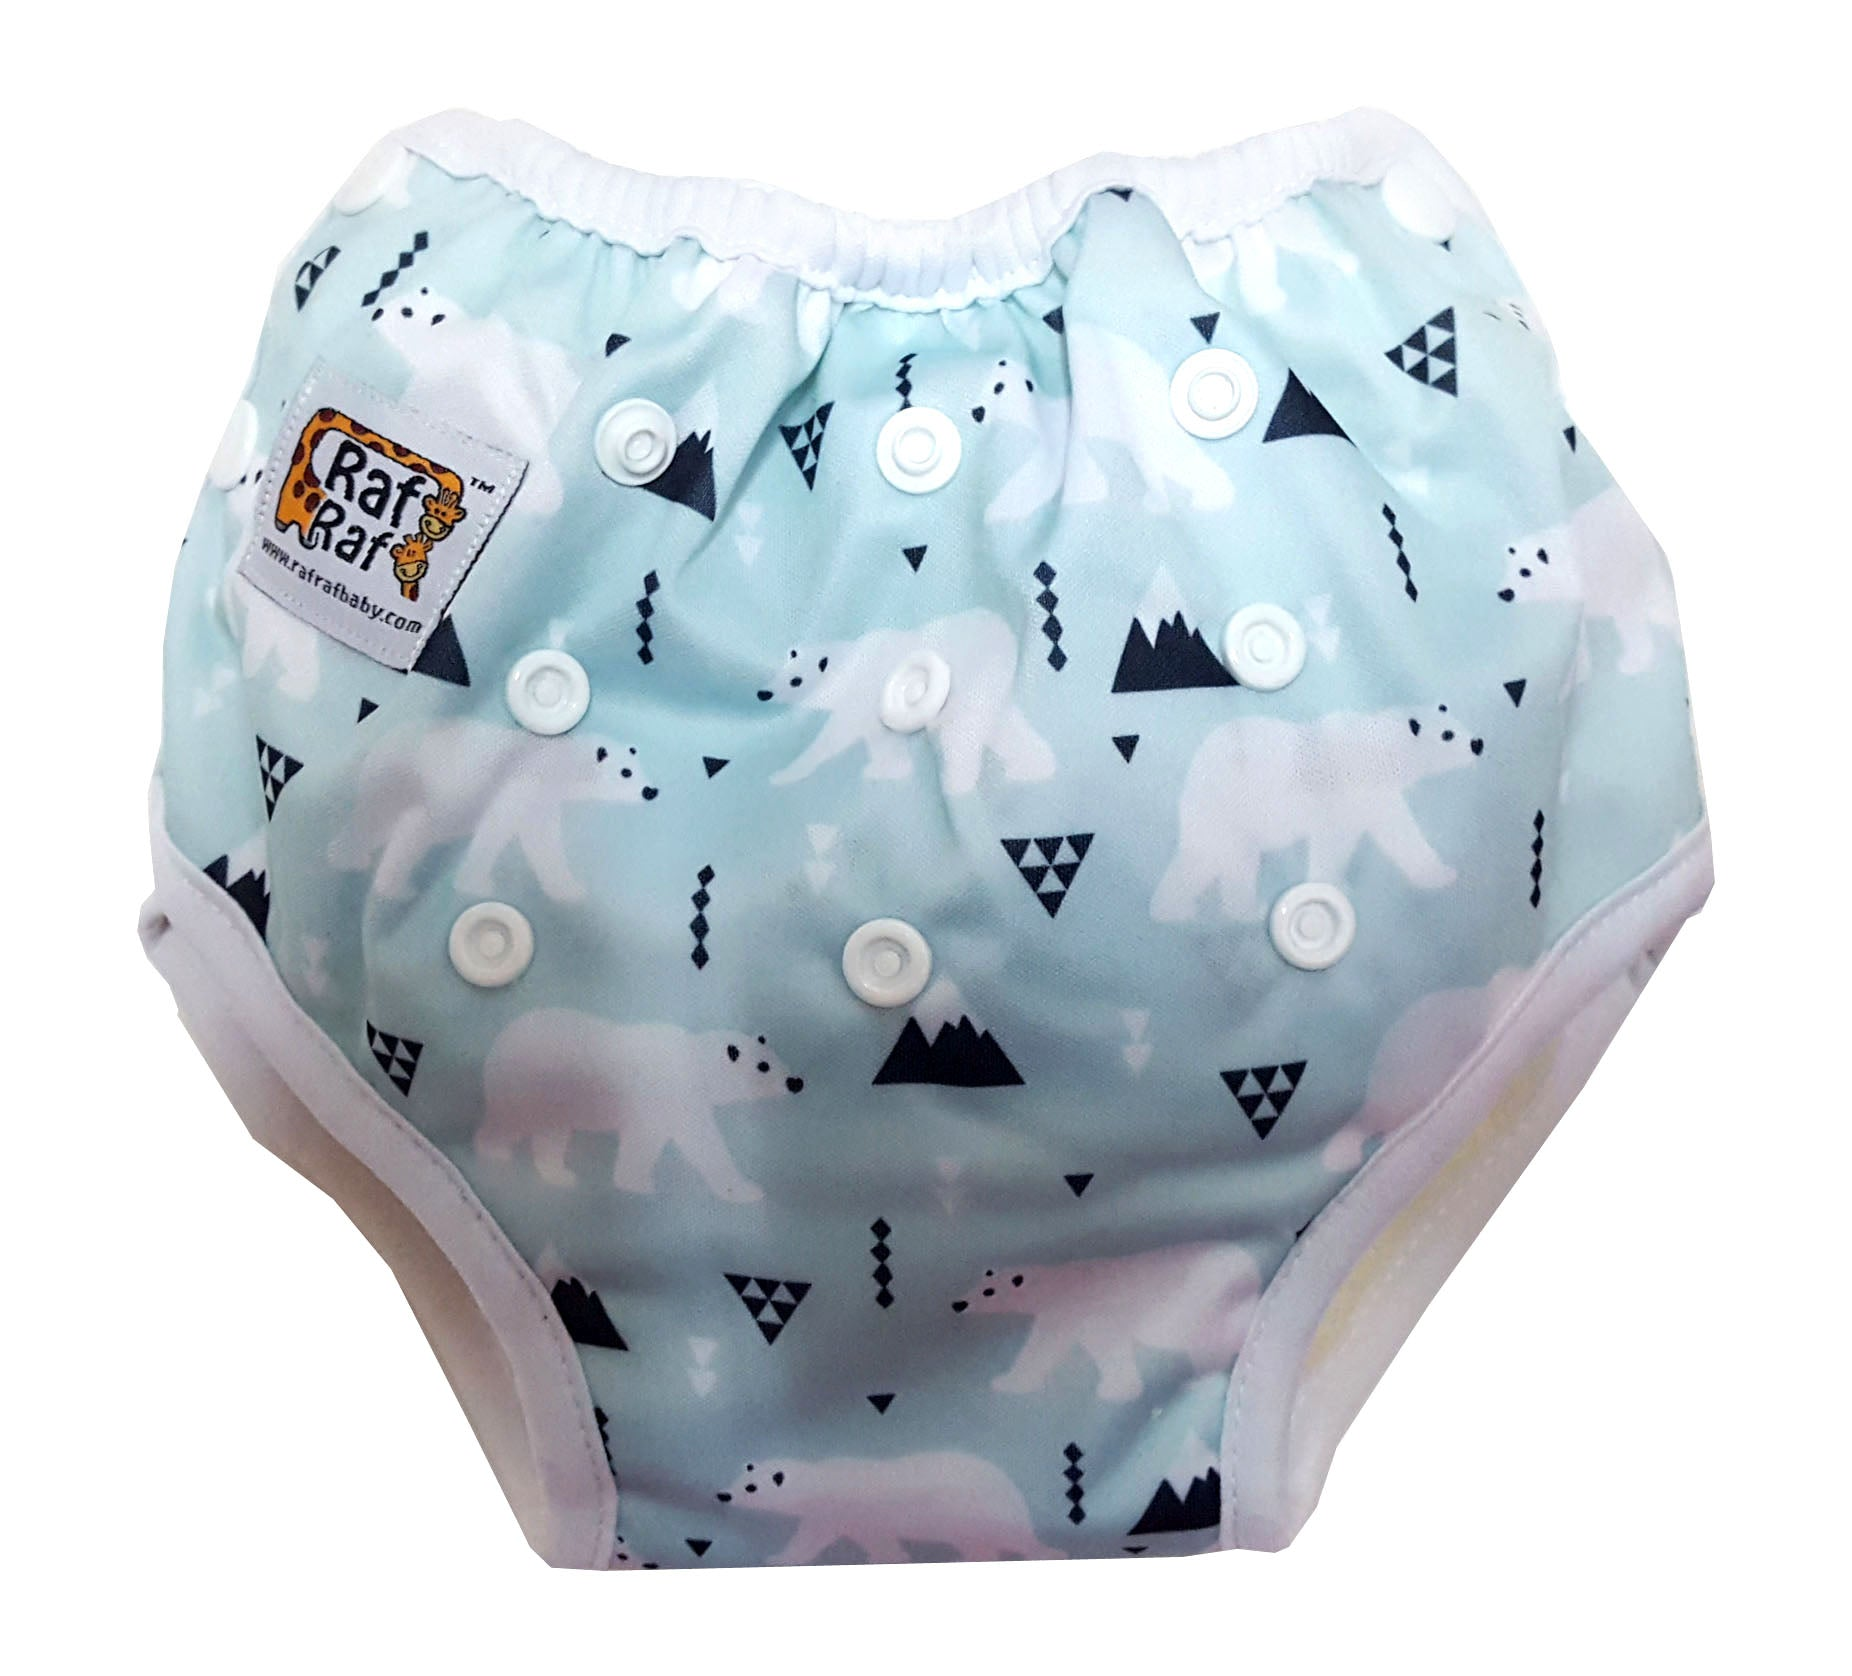 Bamboo Potty Training Pants - Adjustable Size - Buy 1 Get 1 Free